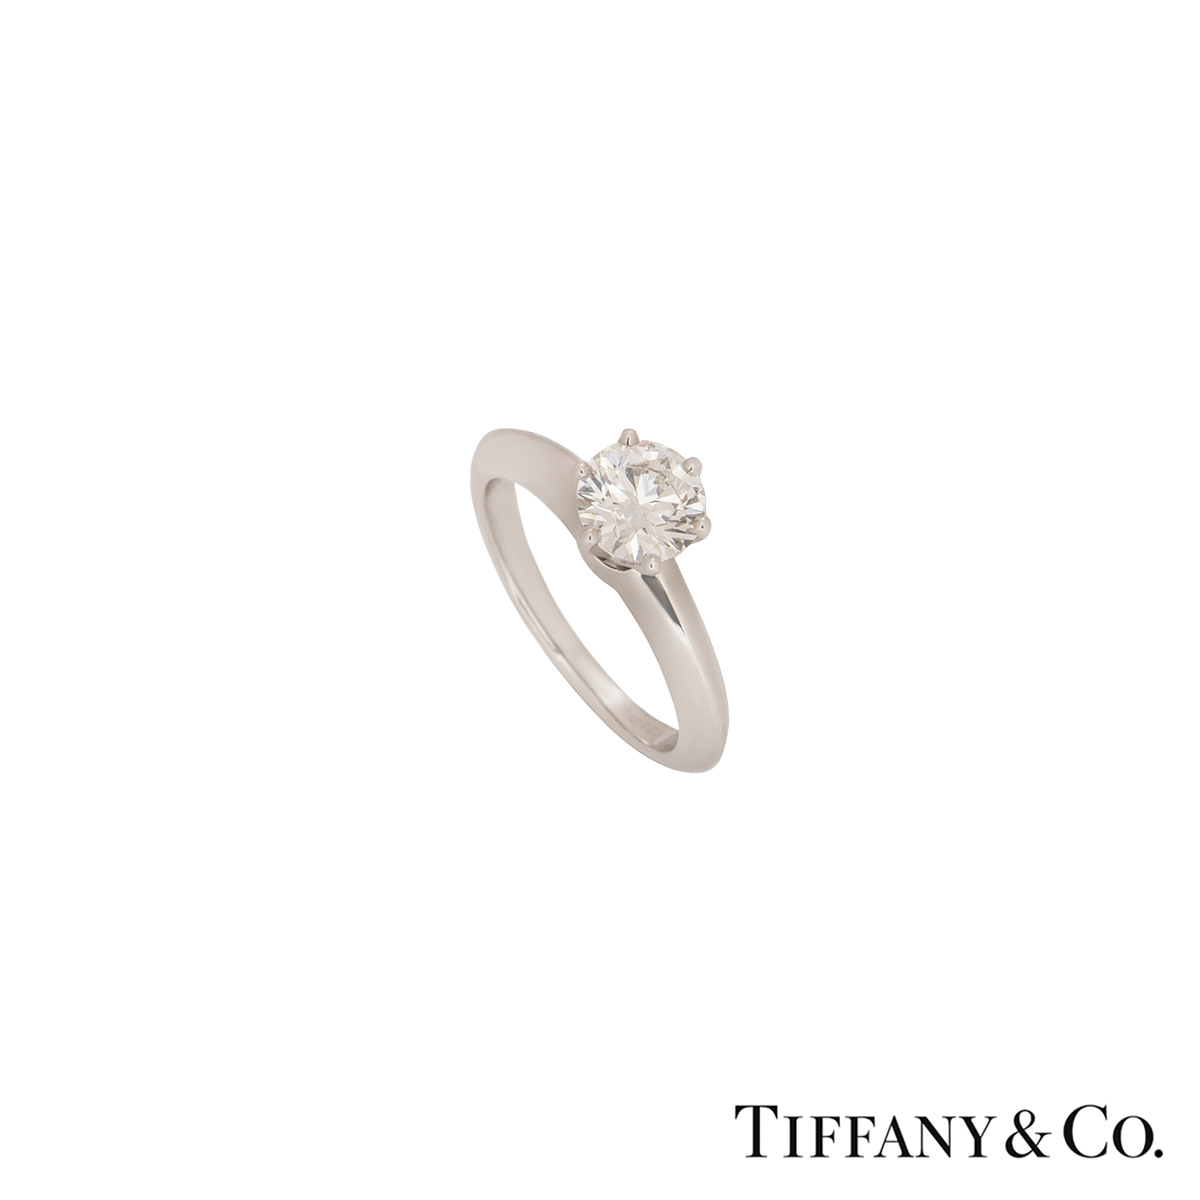 Tiffany & Co. Platinum Diamond Setting Ring 0.86ct I/VS1 XXX